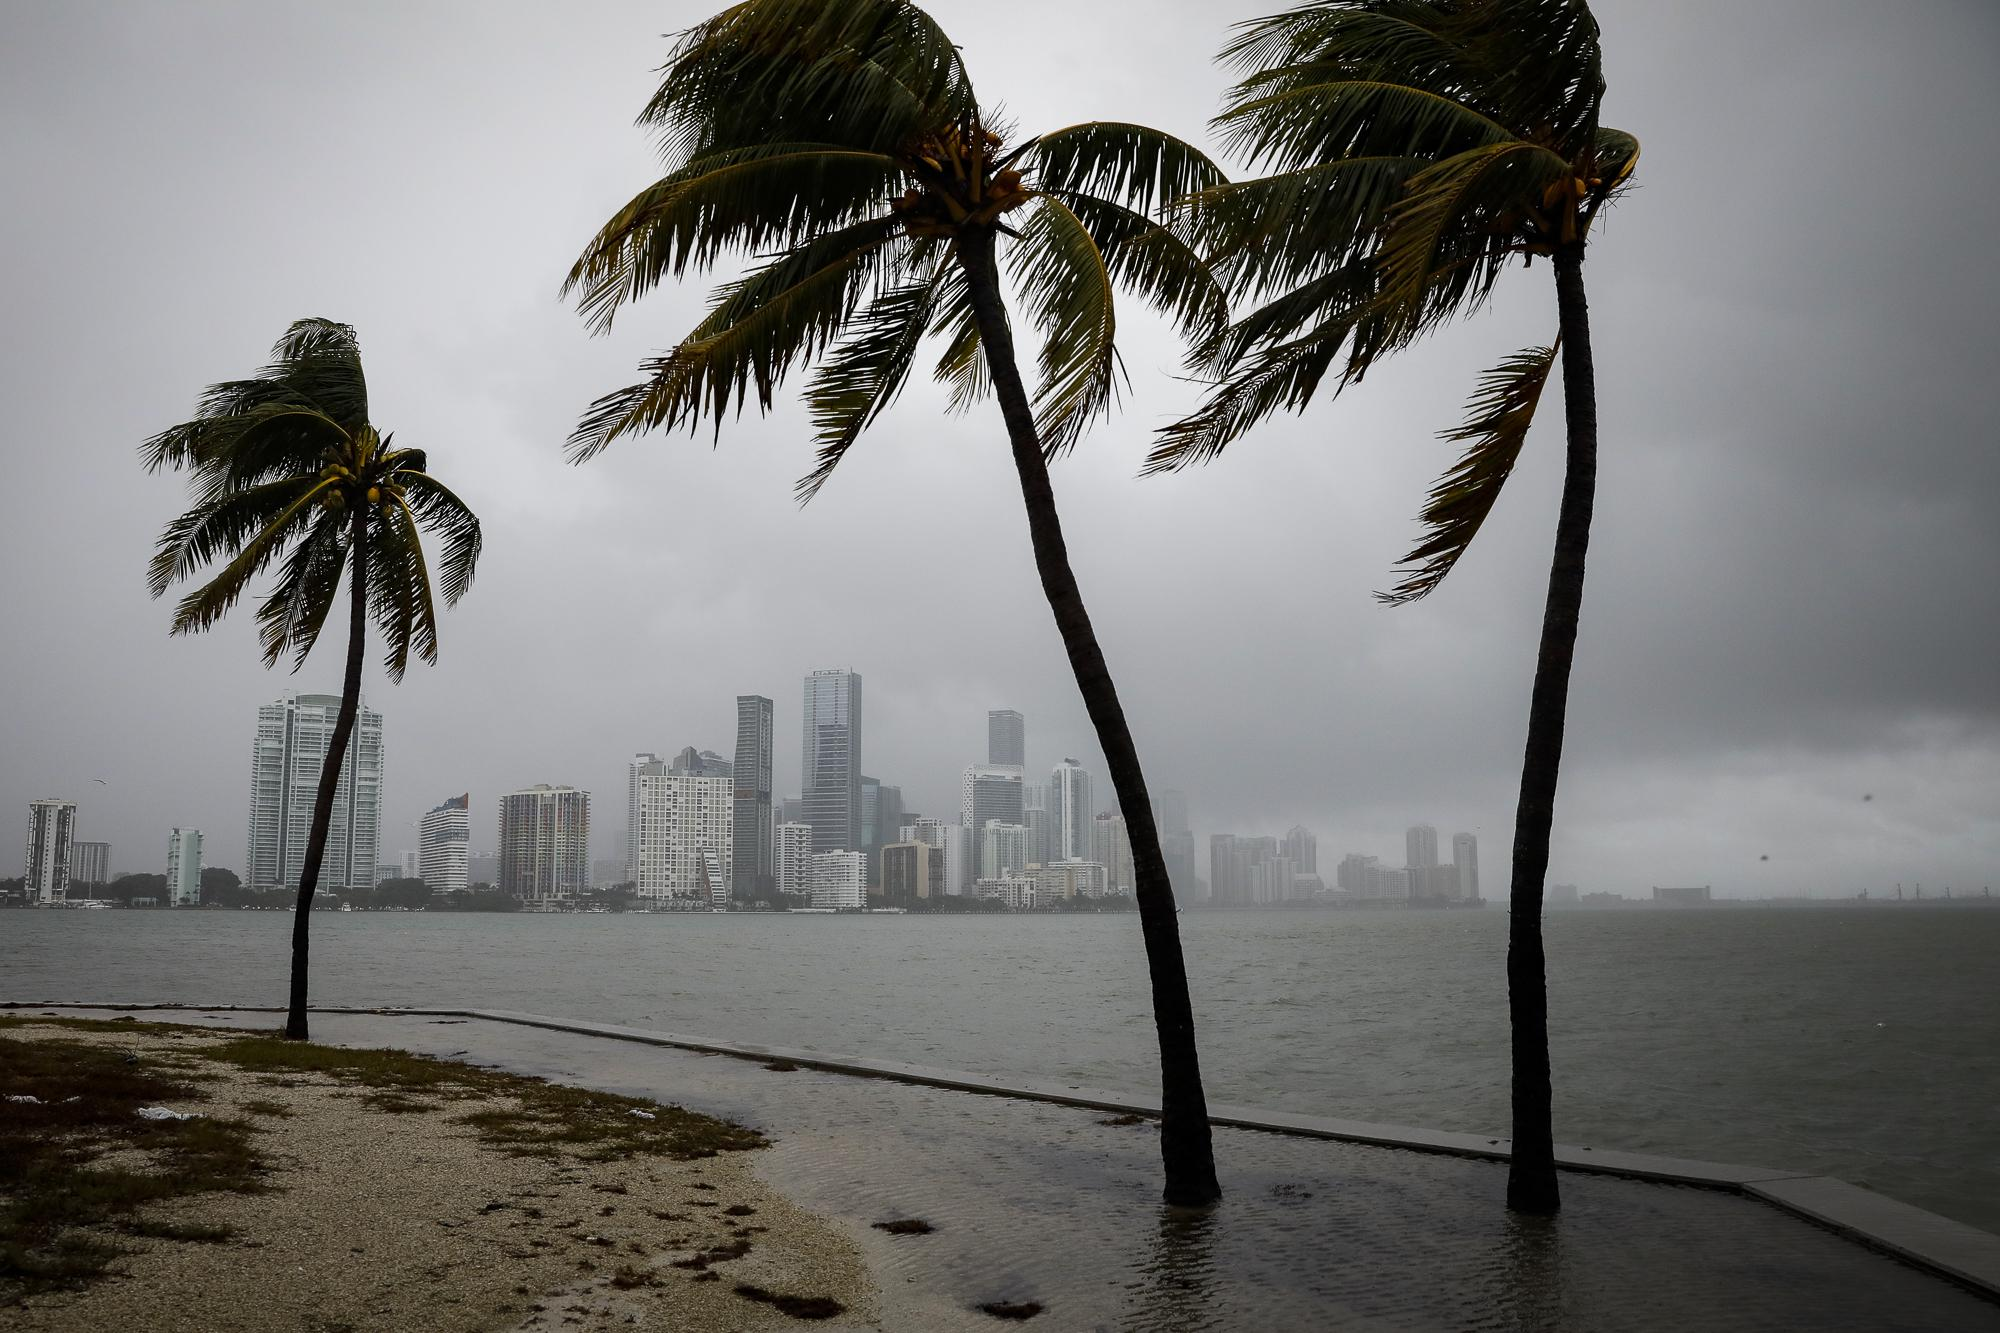 The city skyline during rain caused by Tropical Storm Eta, in Miami, Florida, U.S., November 9, 2020. REUTERS/Marco Bello